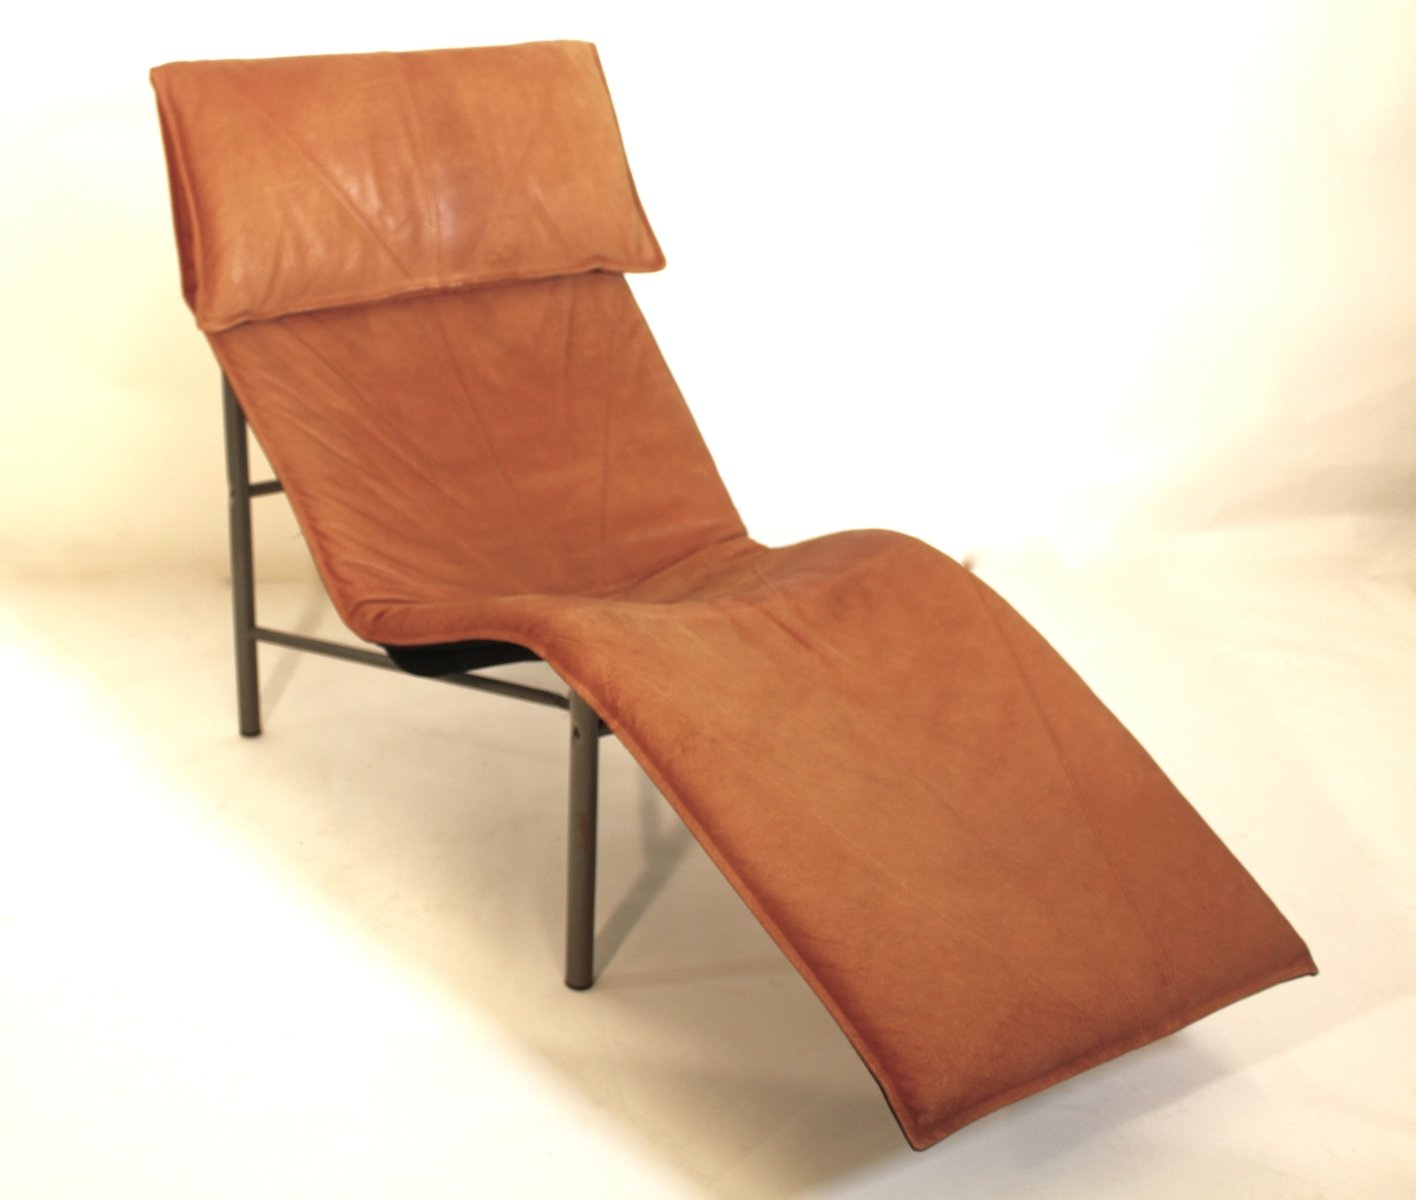 Brown leather chaise longue by tord bjorklund 1970s for for Chaise longue solde